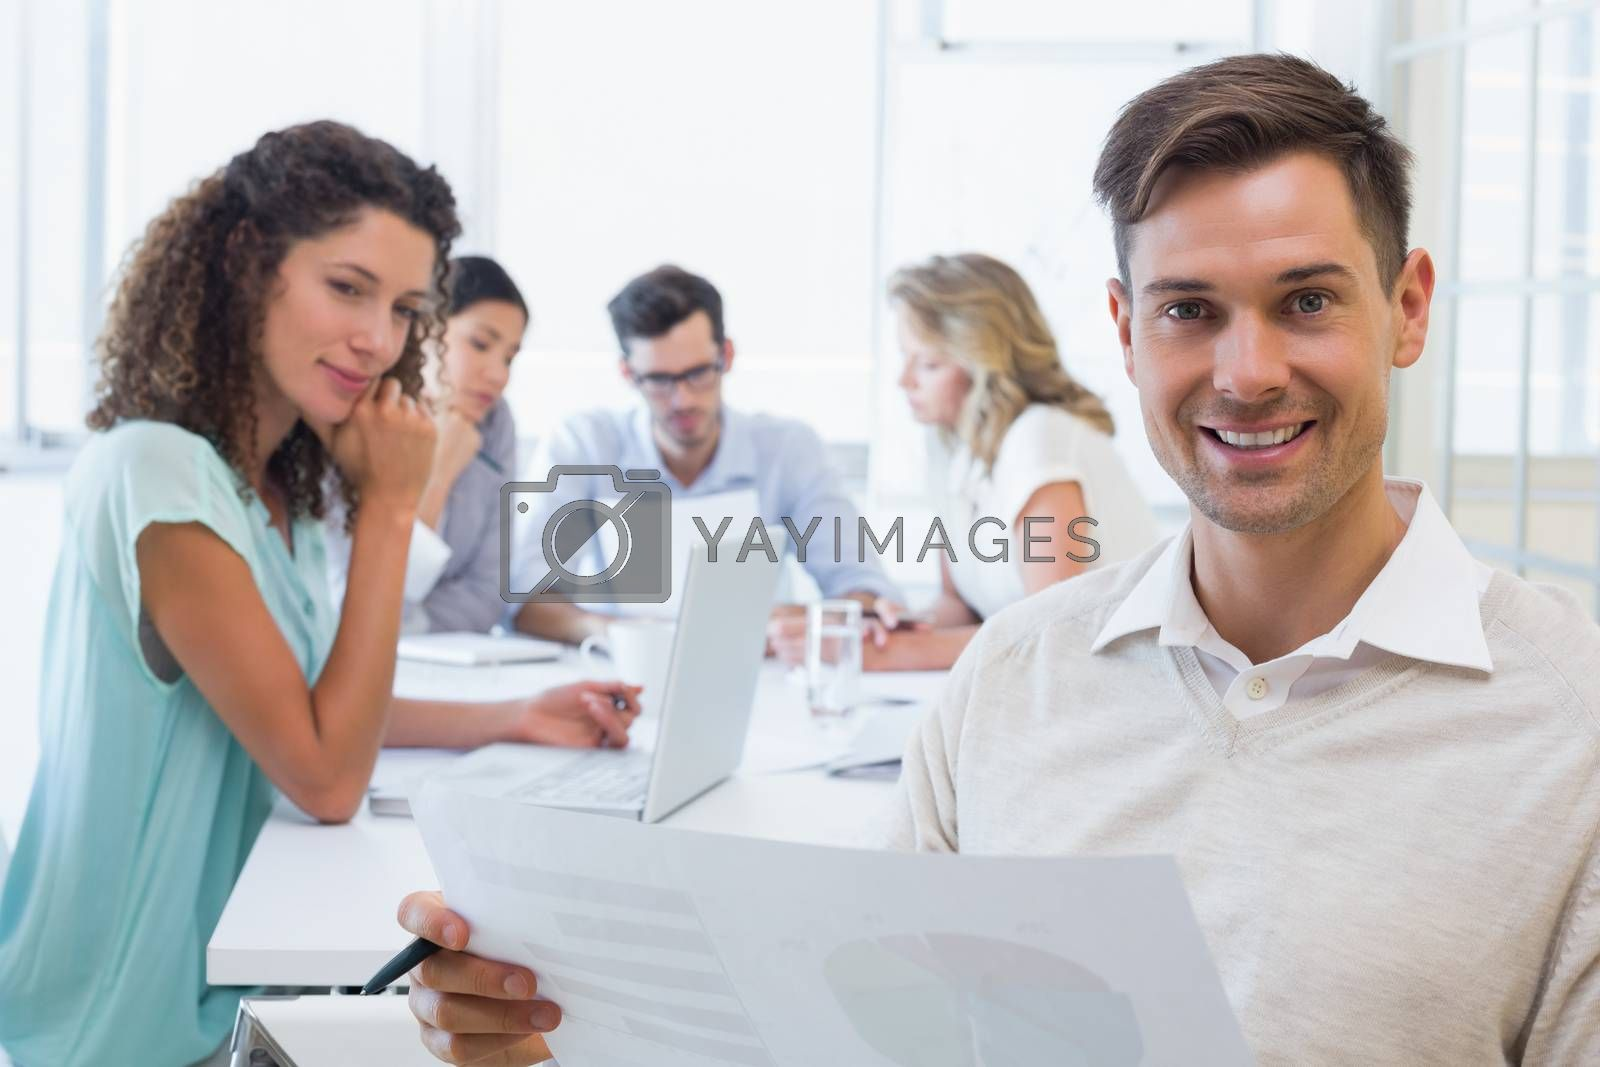 Royalty free image of Casual businessman reading document during meeting by Wavebreakmedia